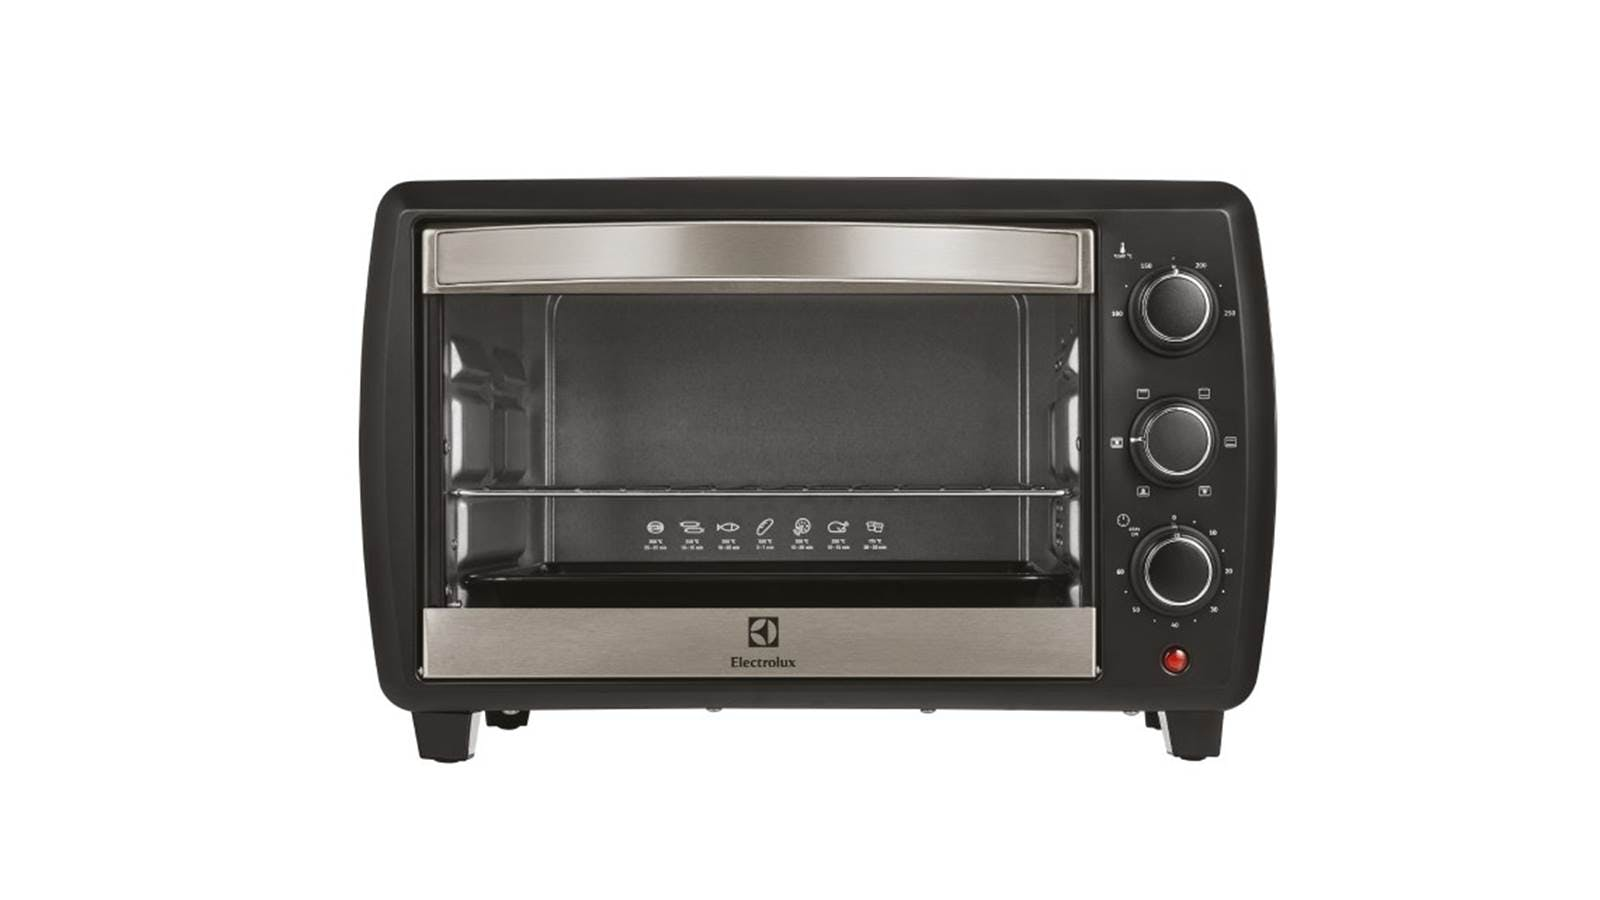 Electrolux 21l Oven Toaster Harvey Norman Malaysia